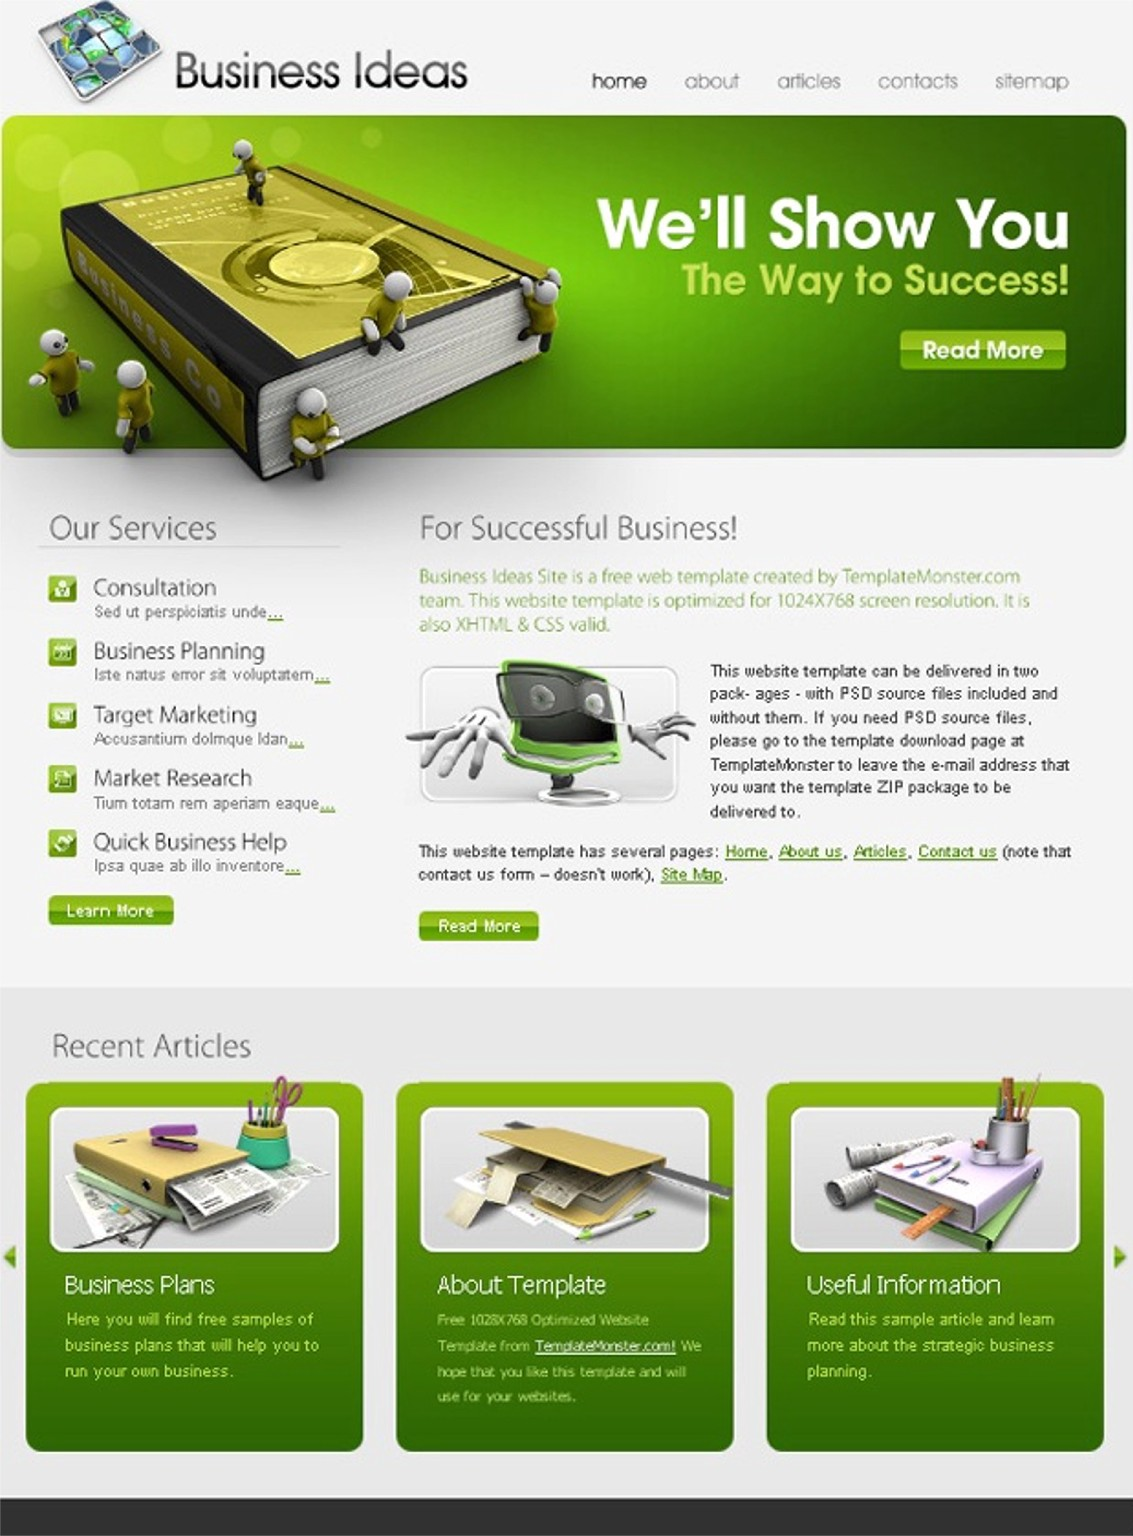 JRL-Enterprises LLC Web Templates10107